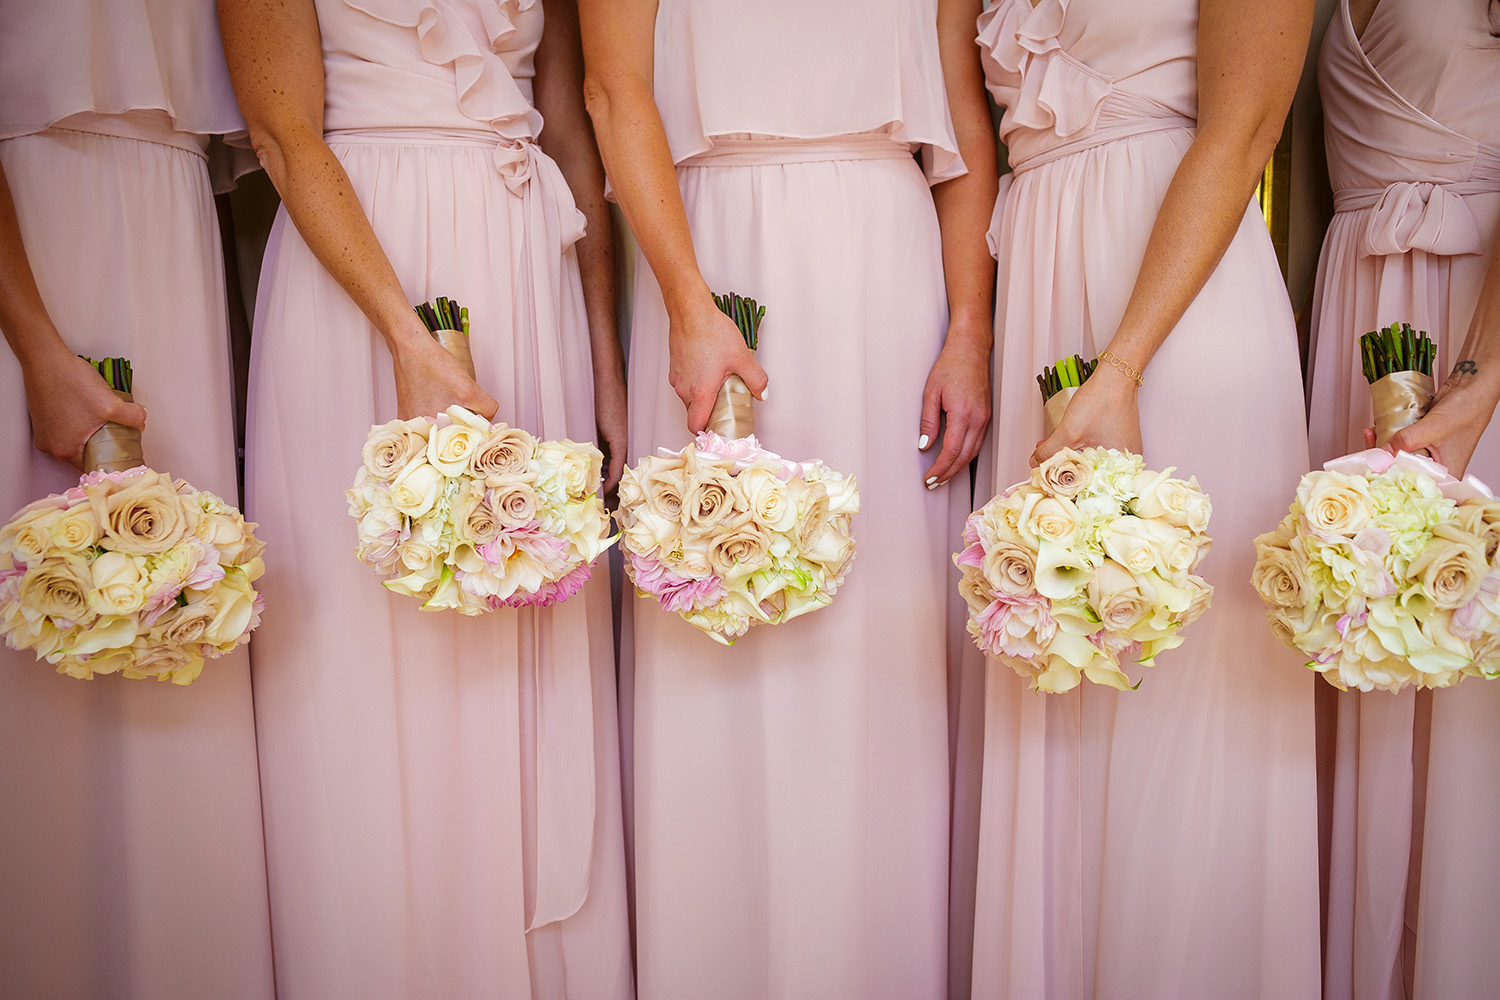 pink-bridesmaid-dresses-against-white-roses